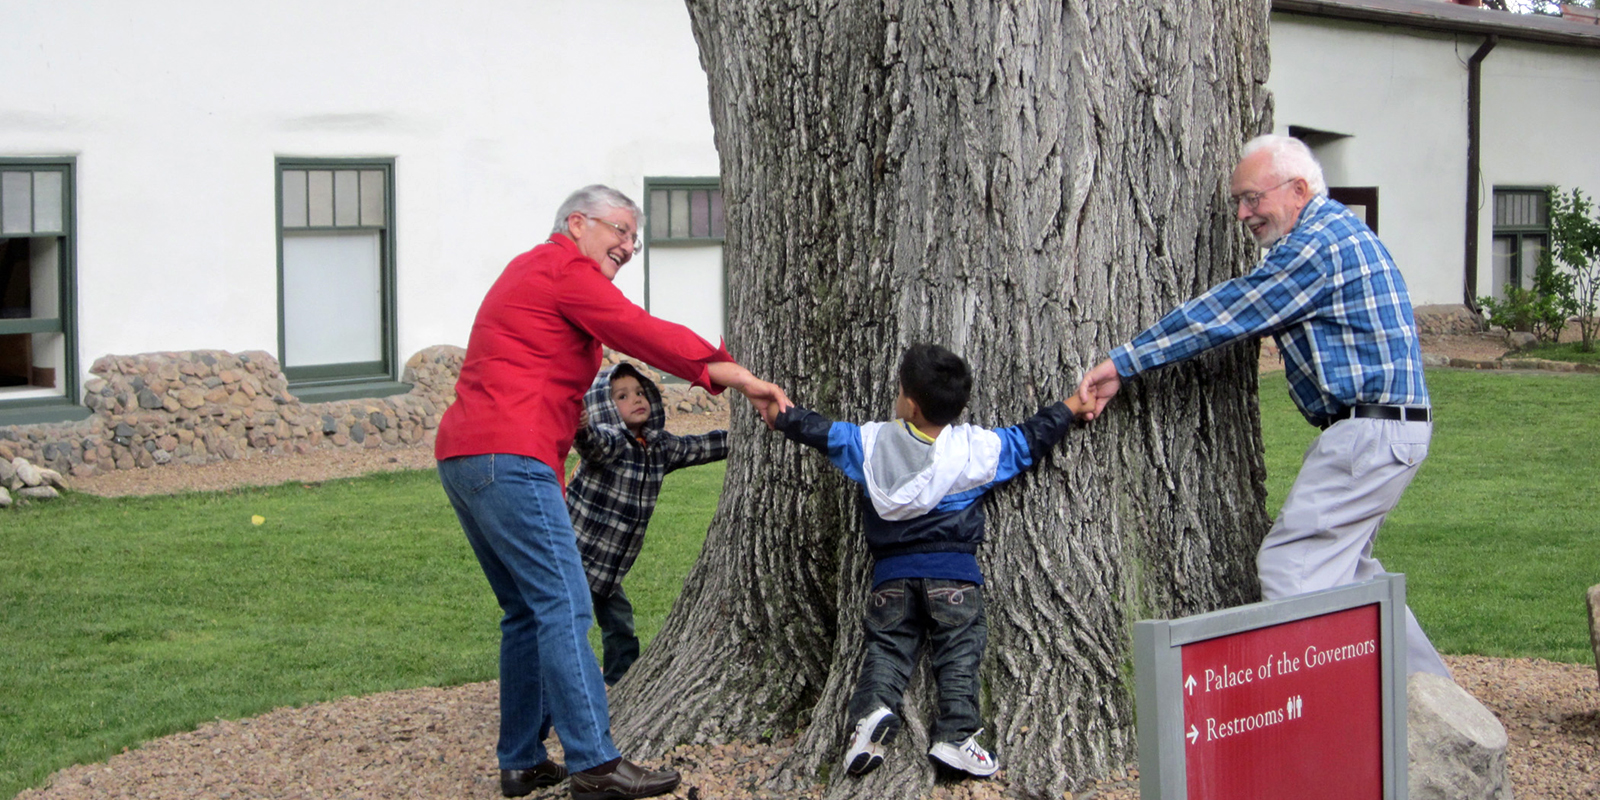 Visitors try to see how many people it takes to circle an elm tree in the courtyard. Photo by Kate Nelson